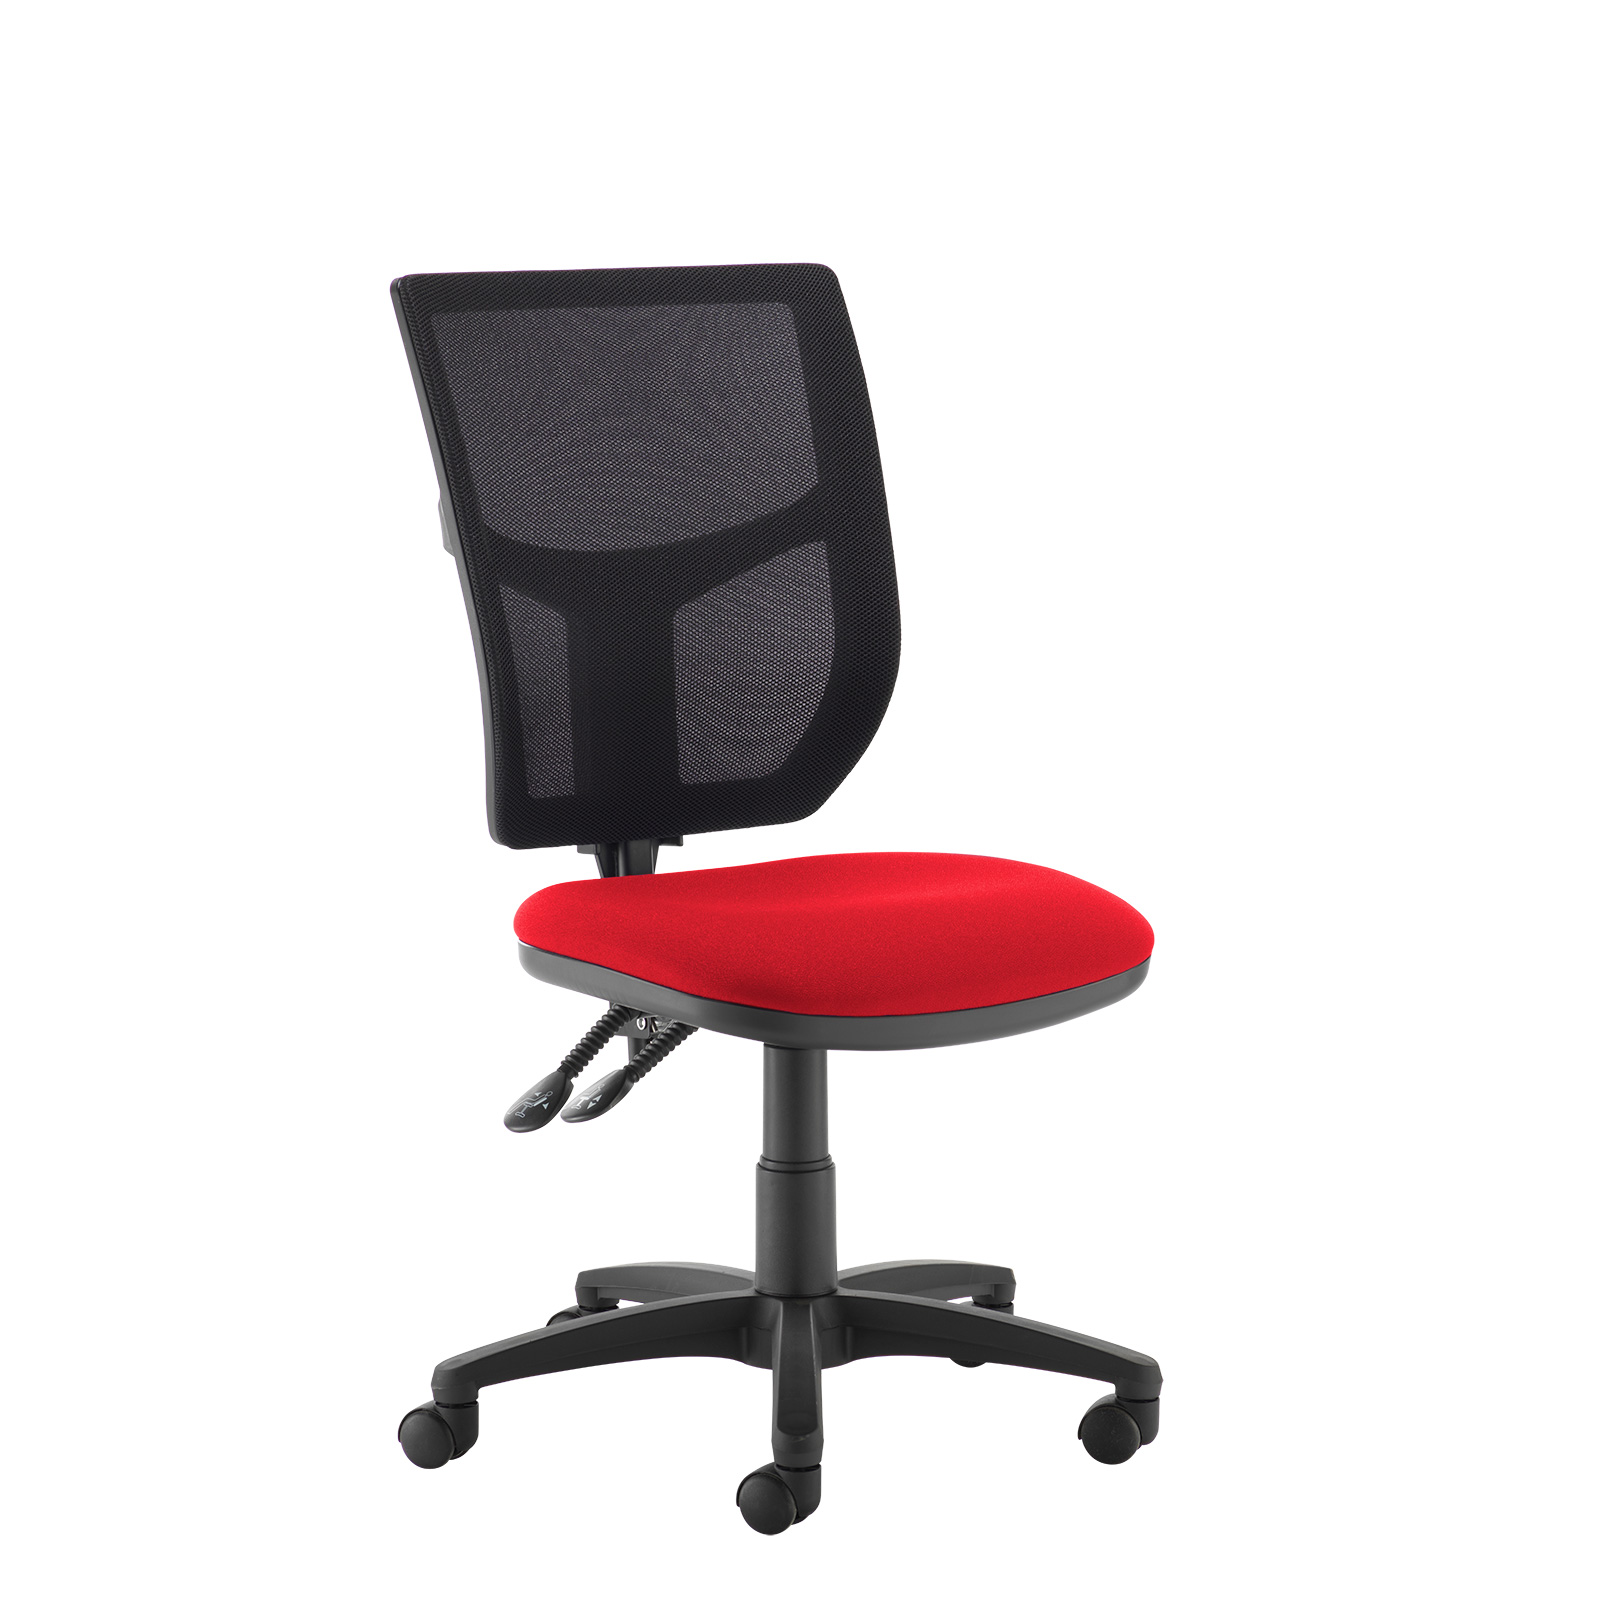 Desk Chairs Altino 2 lever high mesh back operators chair with no arms - red